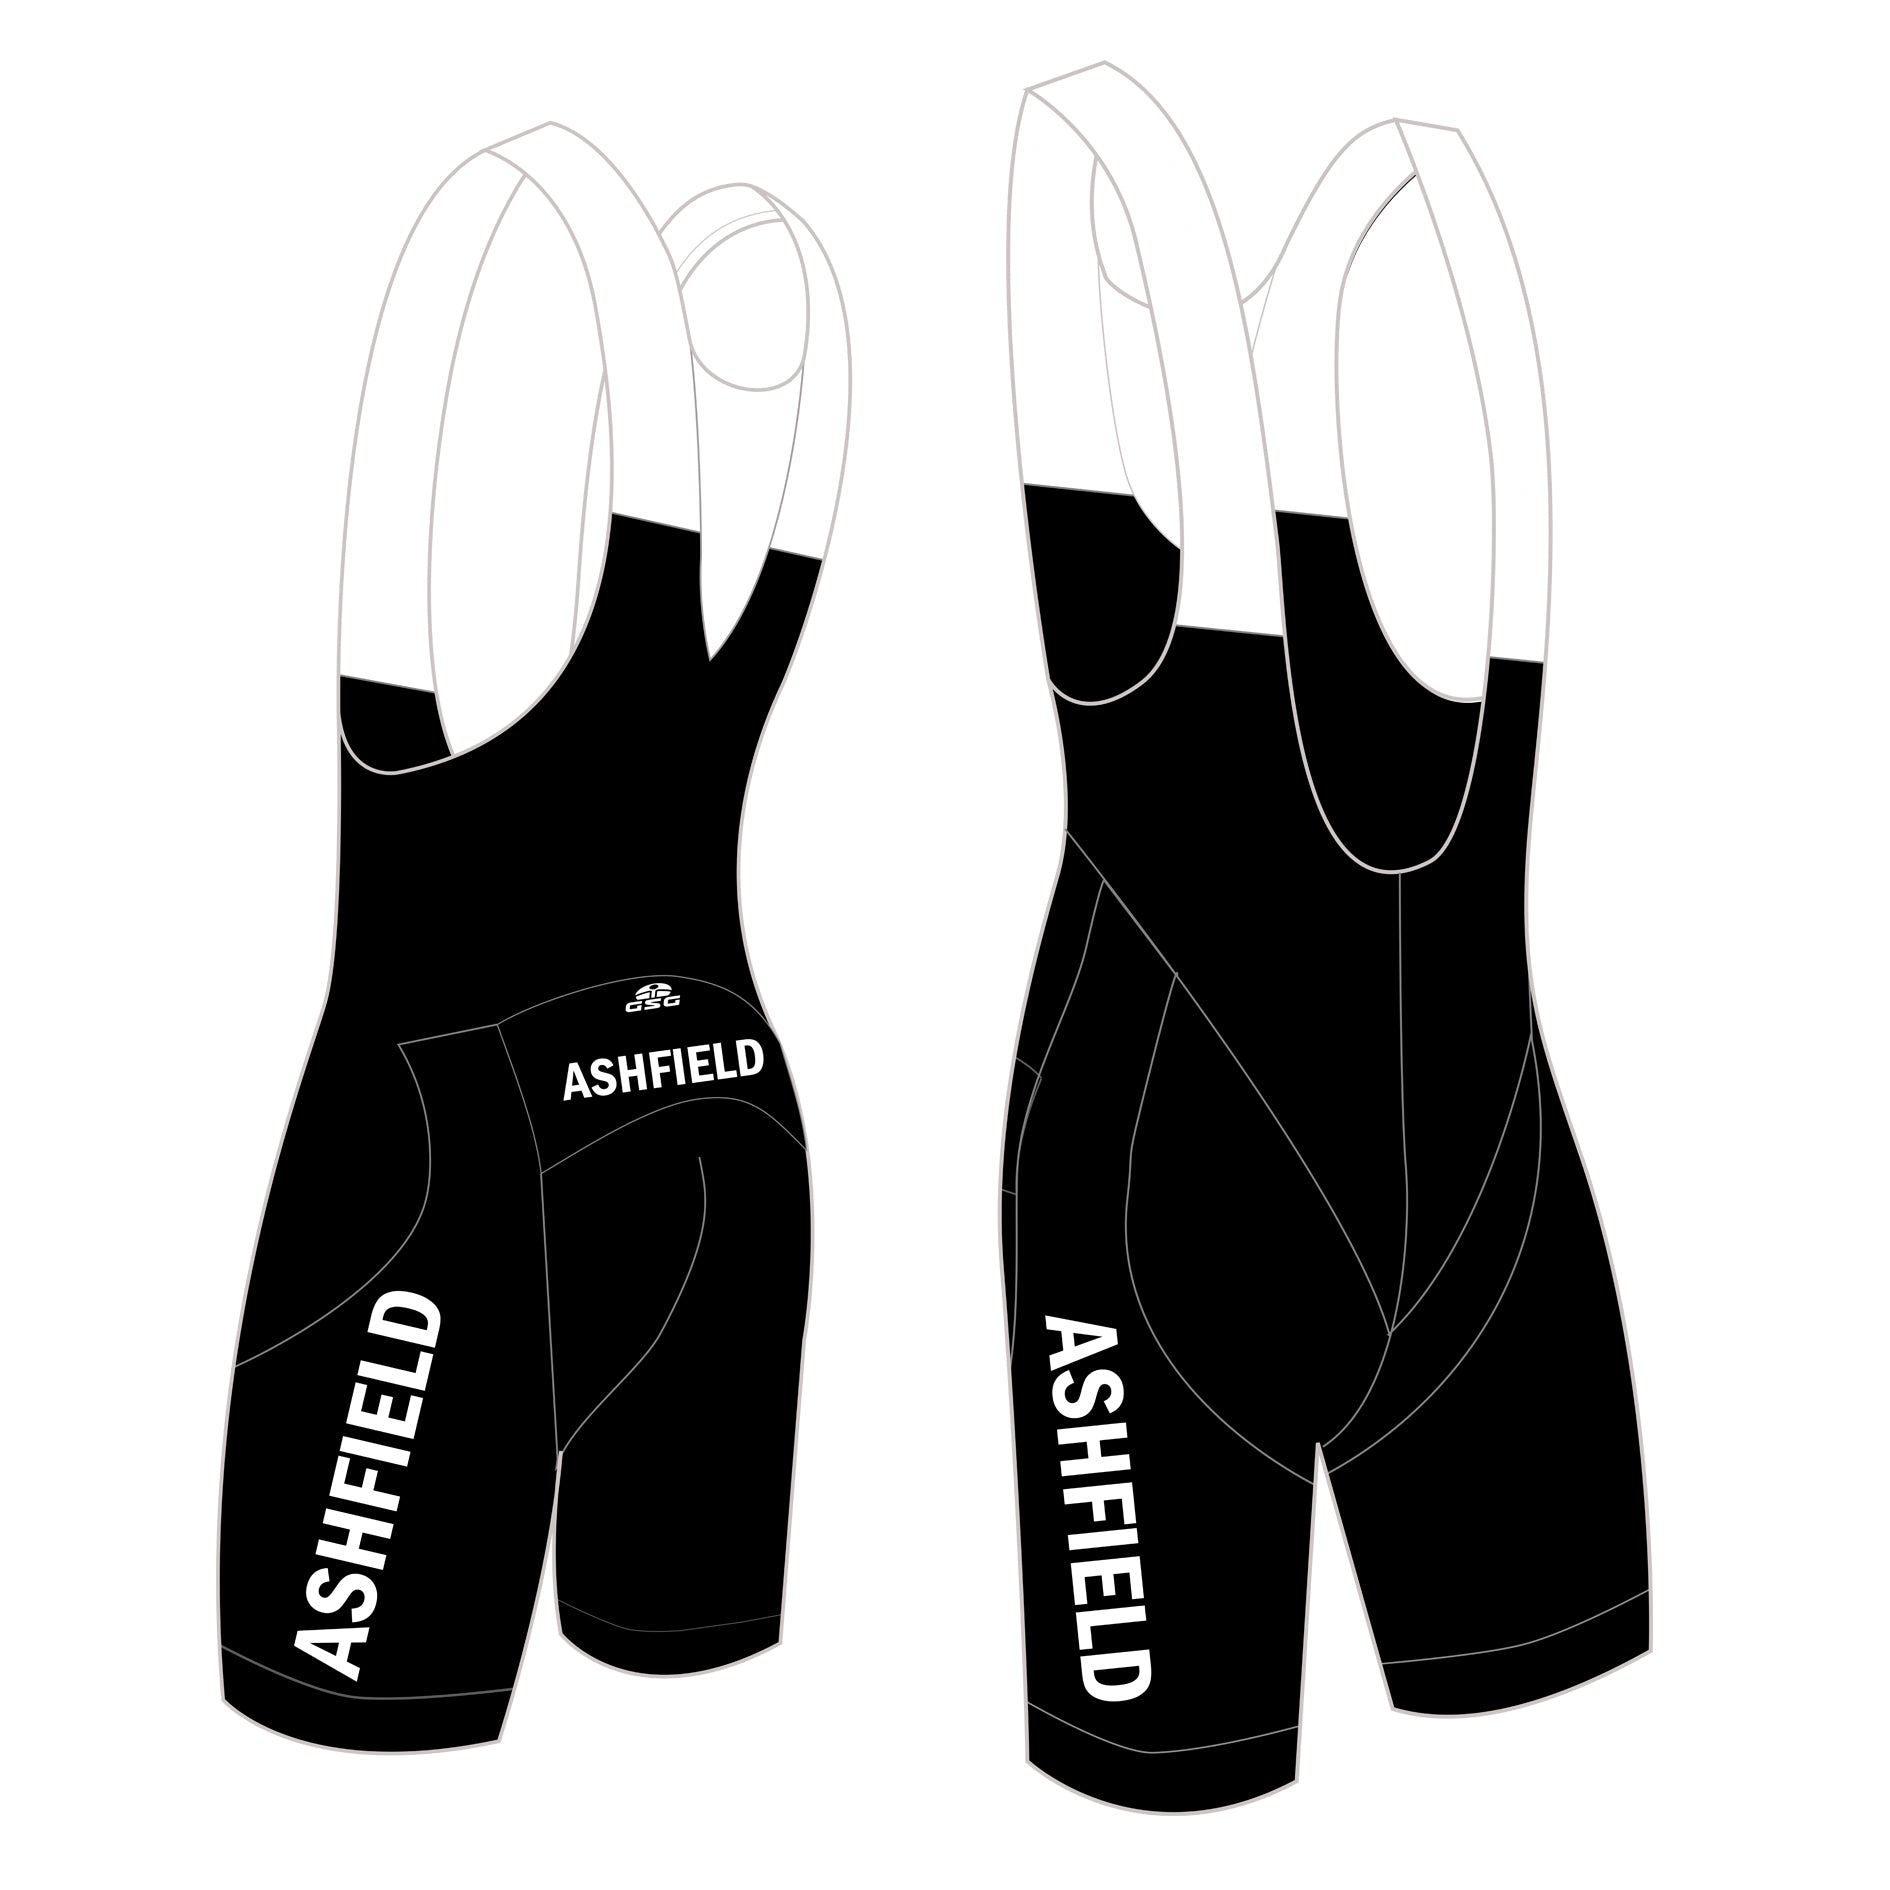 05358 / CHAMPION ANATOMIC BIBSHORTS / ASHFIELD